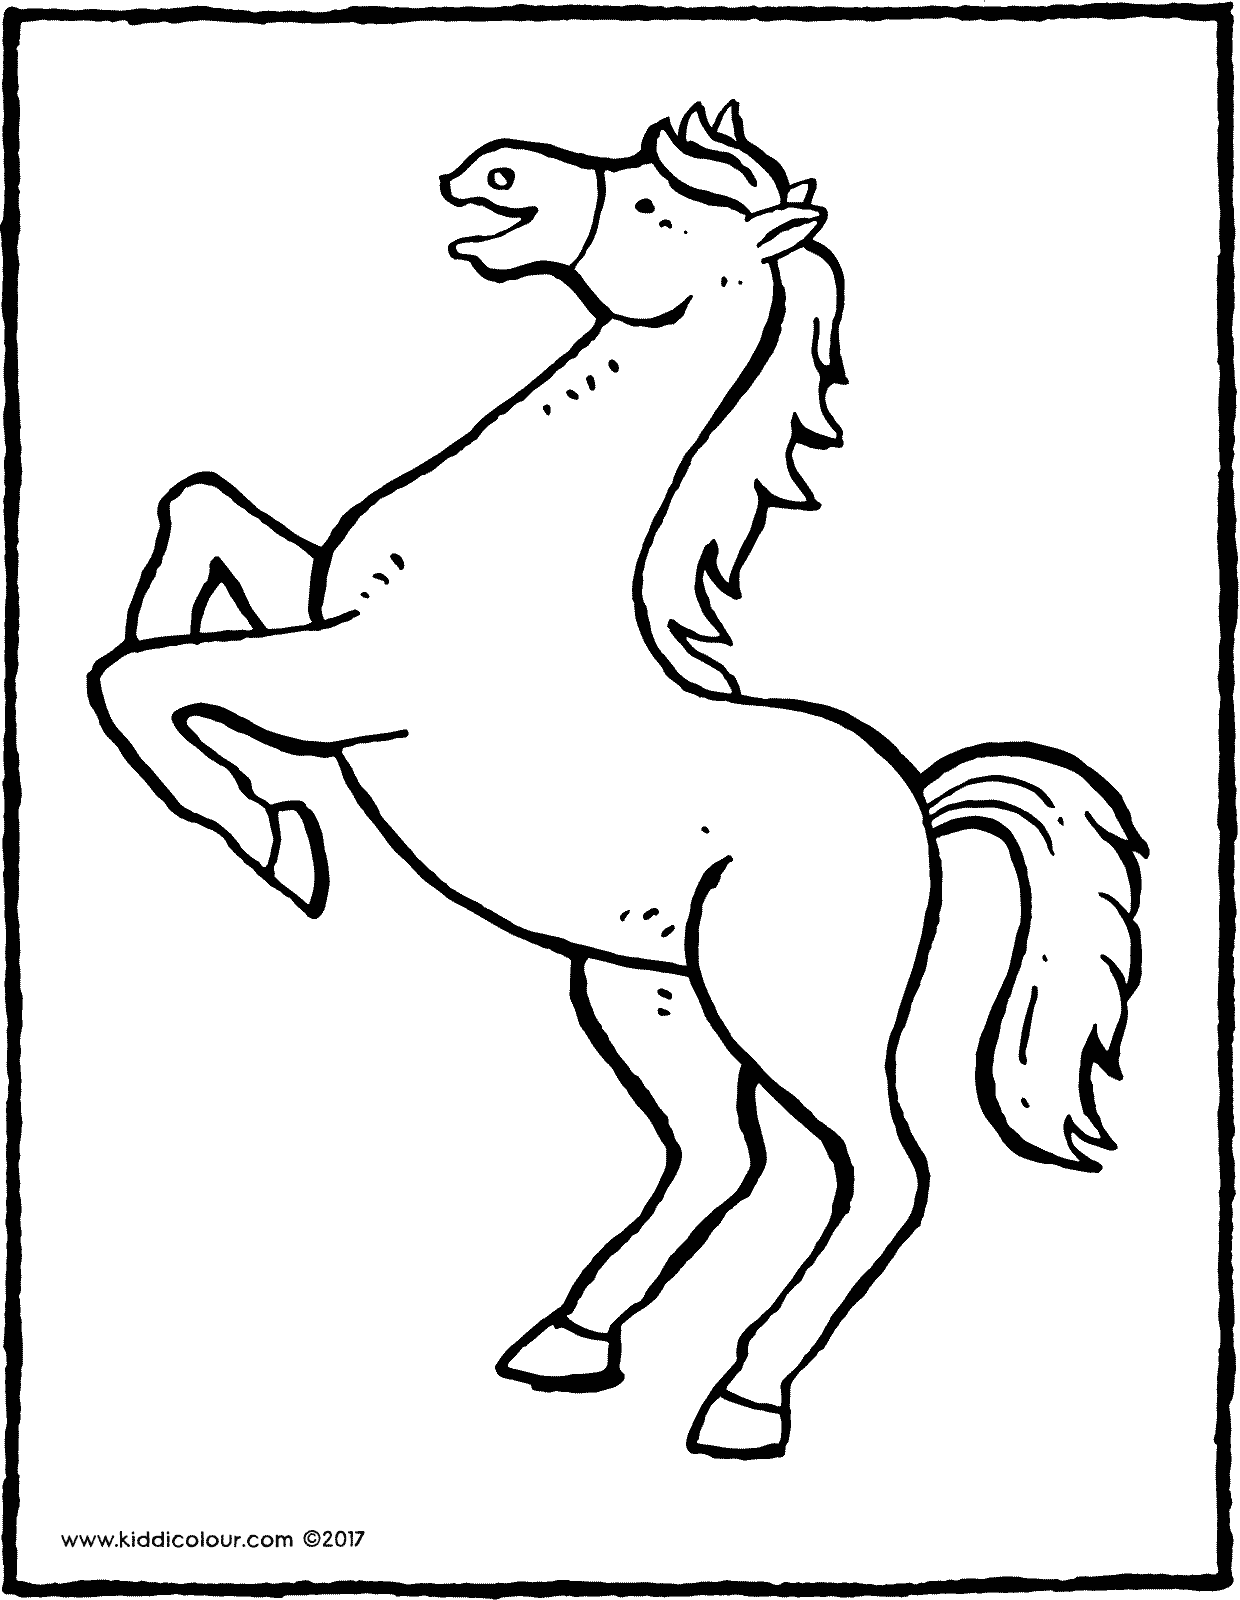 rearing horse coloring pages horse netart pages rearing coloring horse